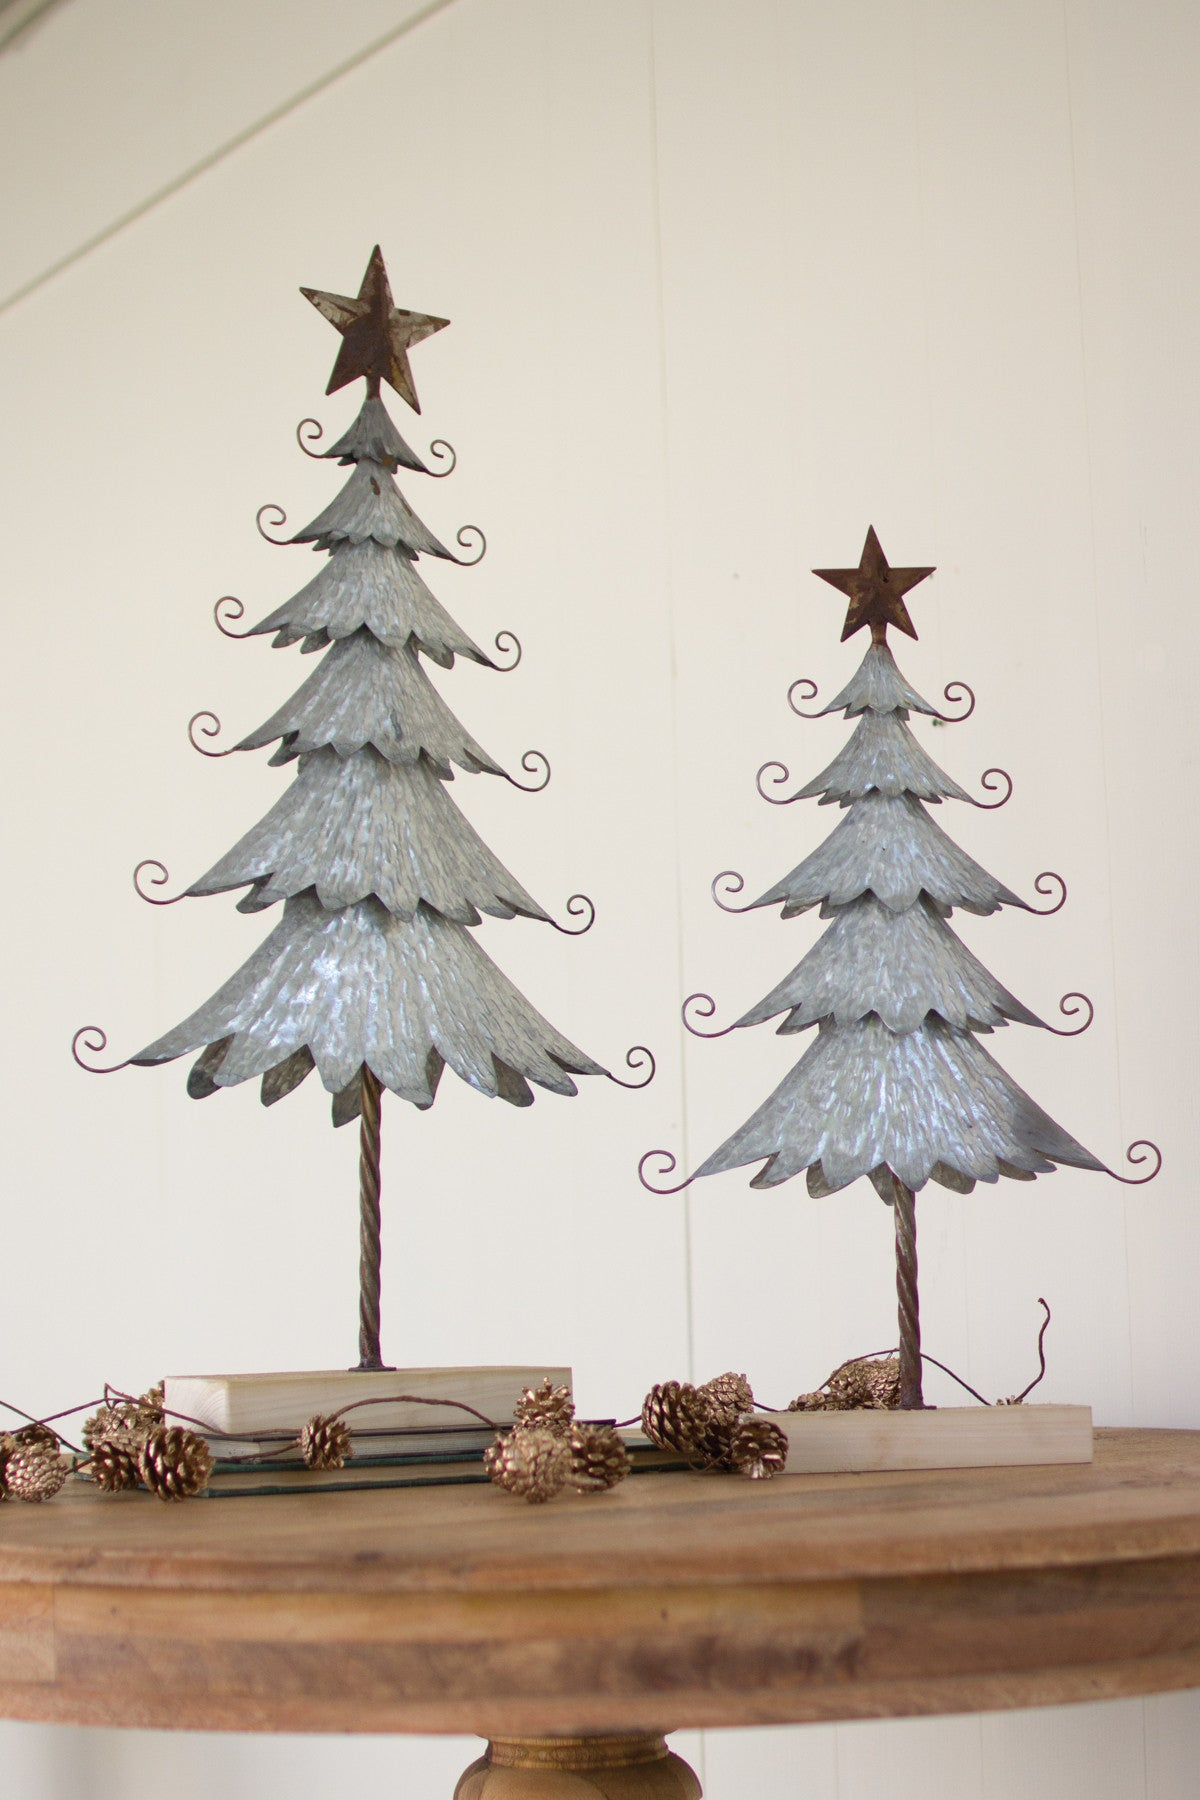 SET OF 2 GALVANIZED TREES WITH RUSTIC DETAIL AND WOODEN BASE